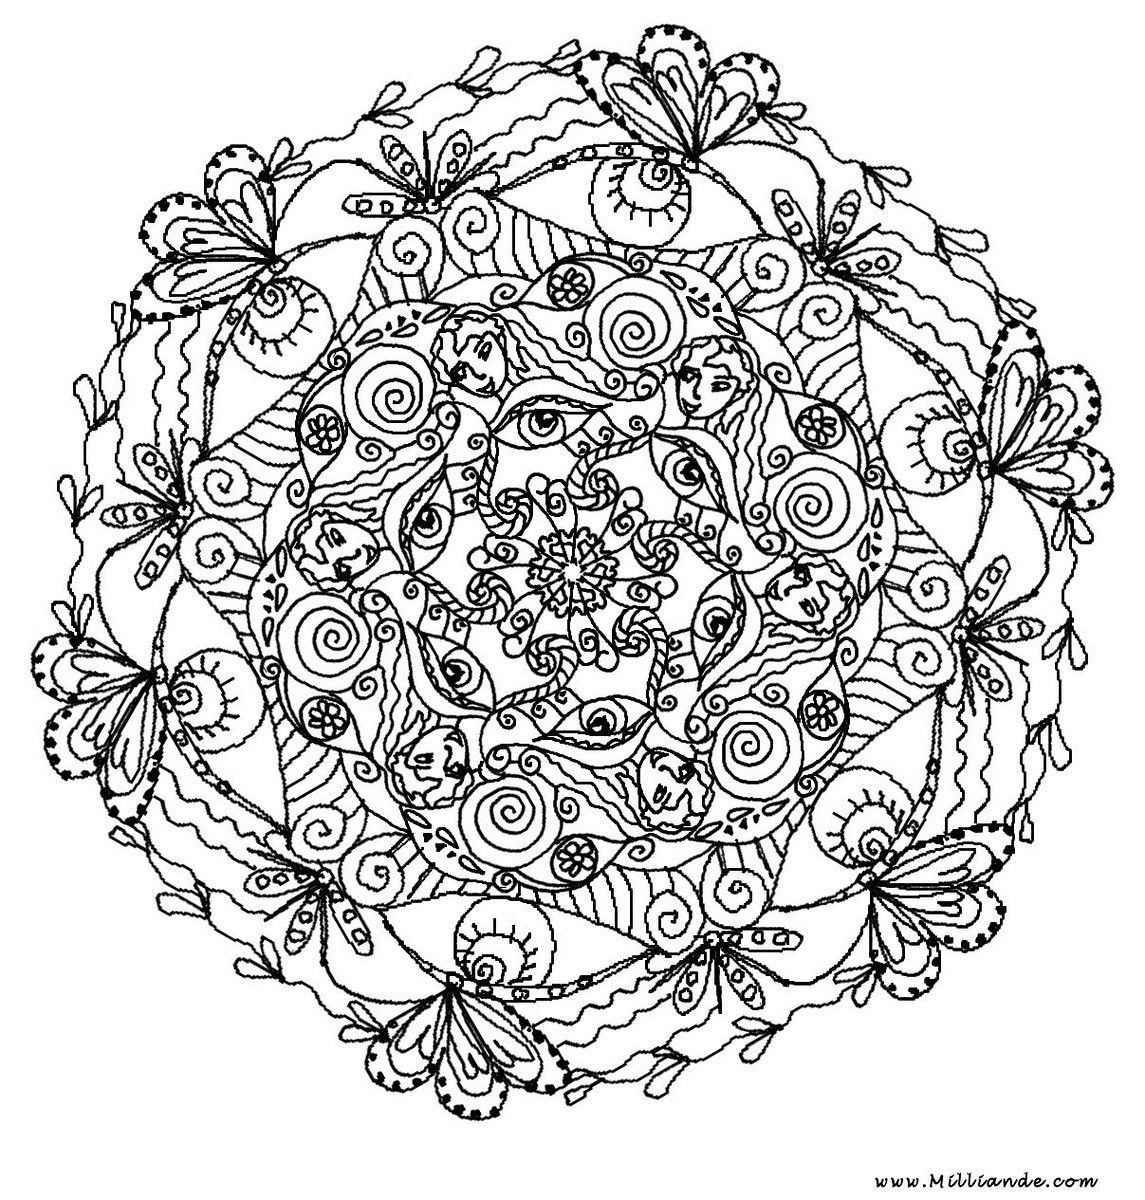 Hard mandala coloring pages for adults - Hard Mandala Coloring Pages For Adults 14